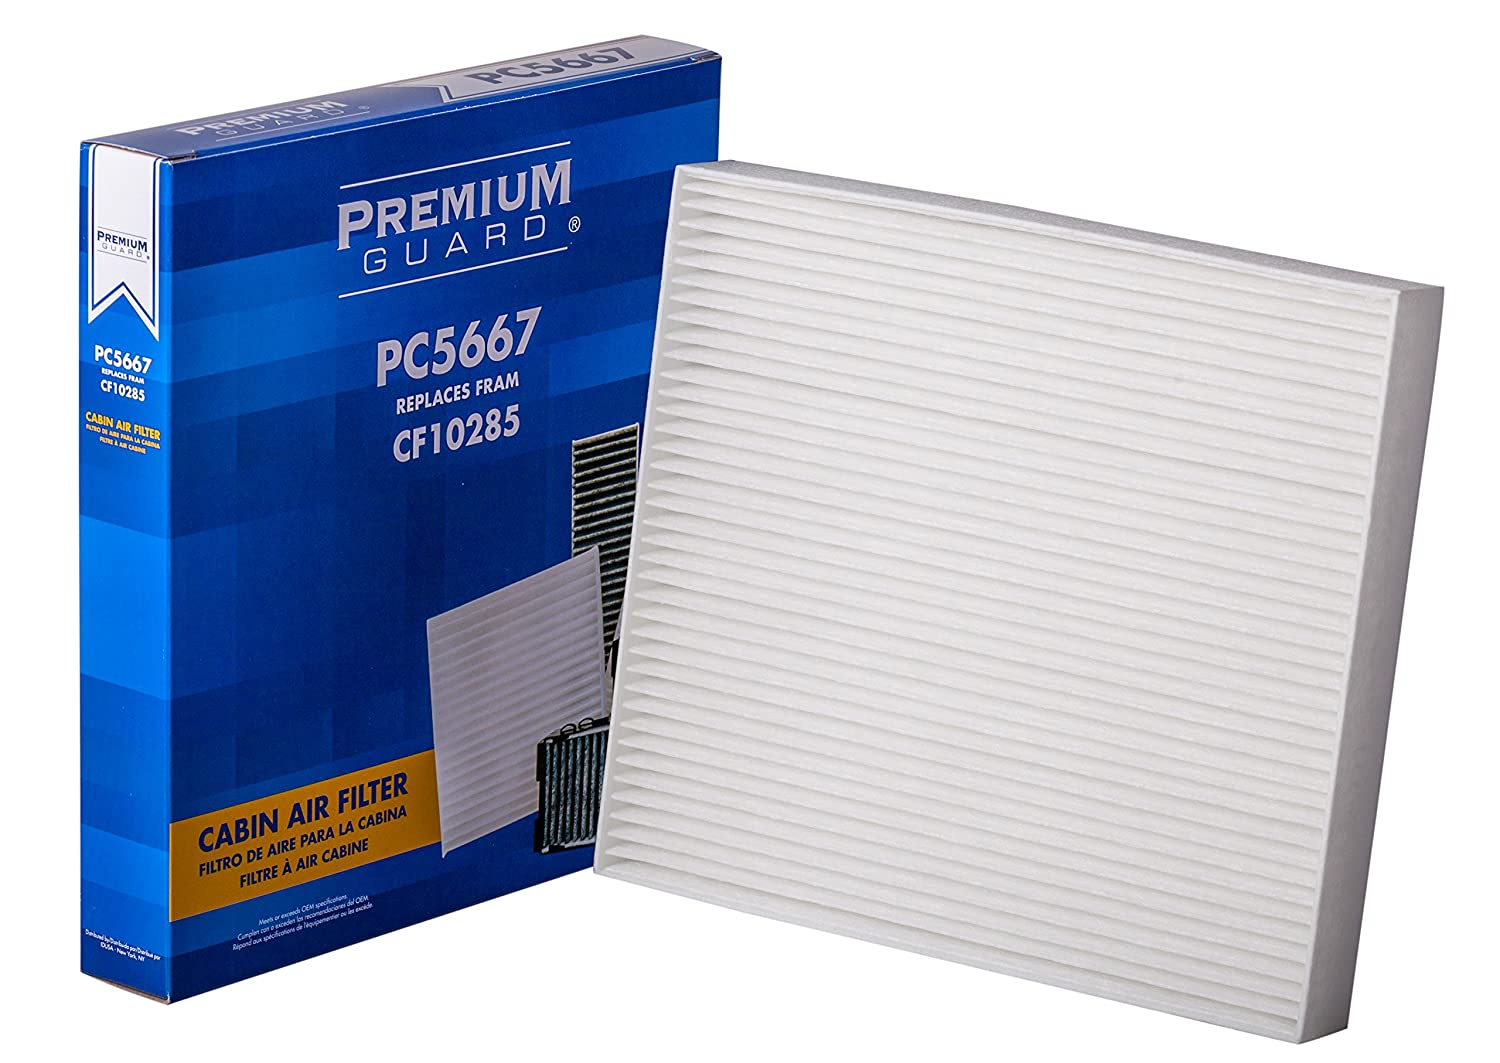 Premium Guard PC5667 Cabin Air Filter PC5667-PGF